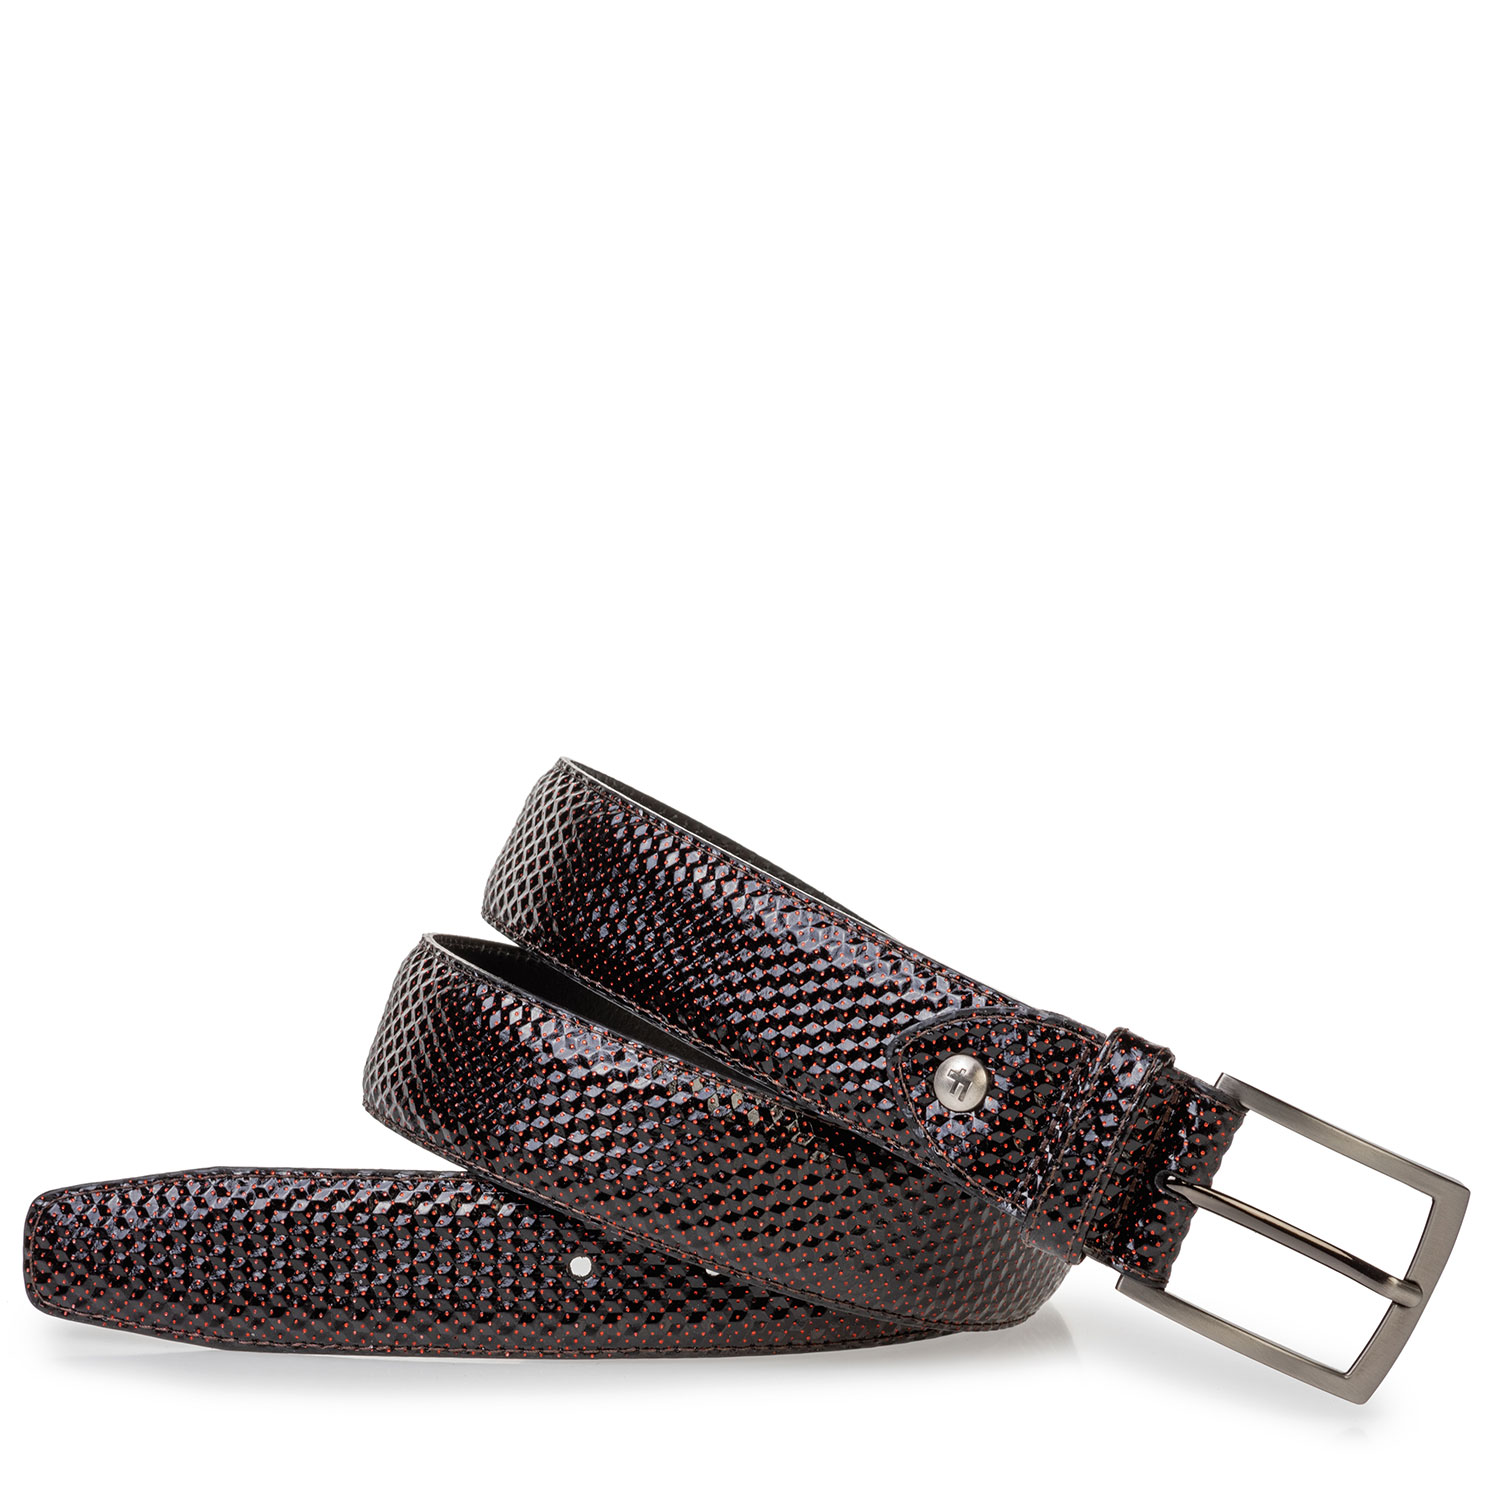 75205/44 - Belt printed leather red